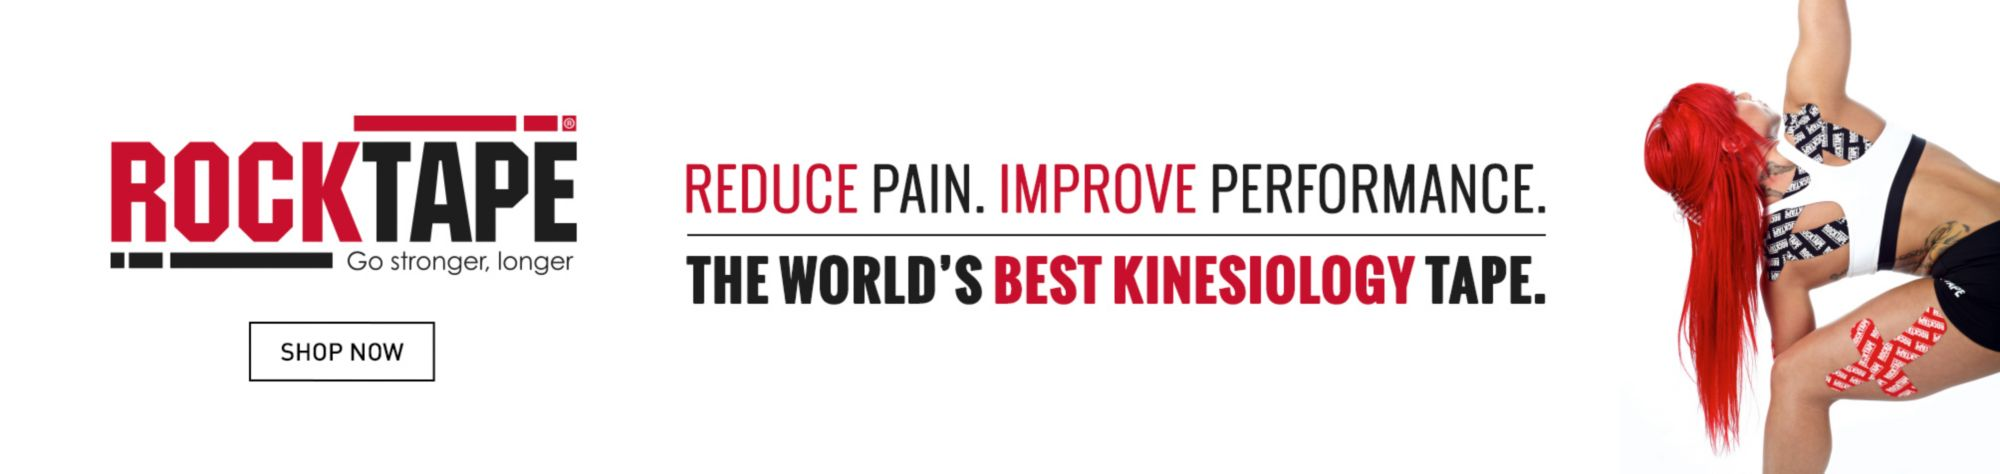 RockTape - Reduce Pain. Improve Performance. The Worlds's Best Kinesiology Tape. Shop Now